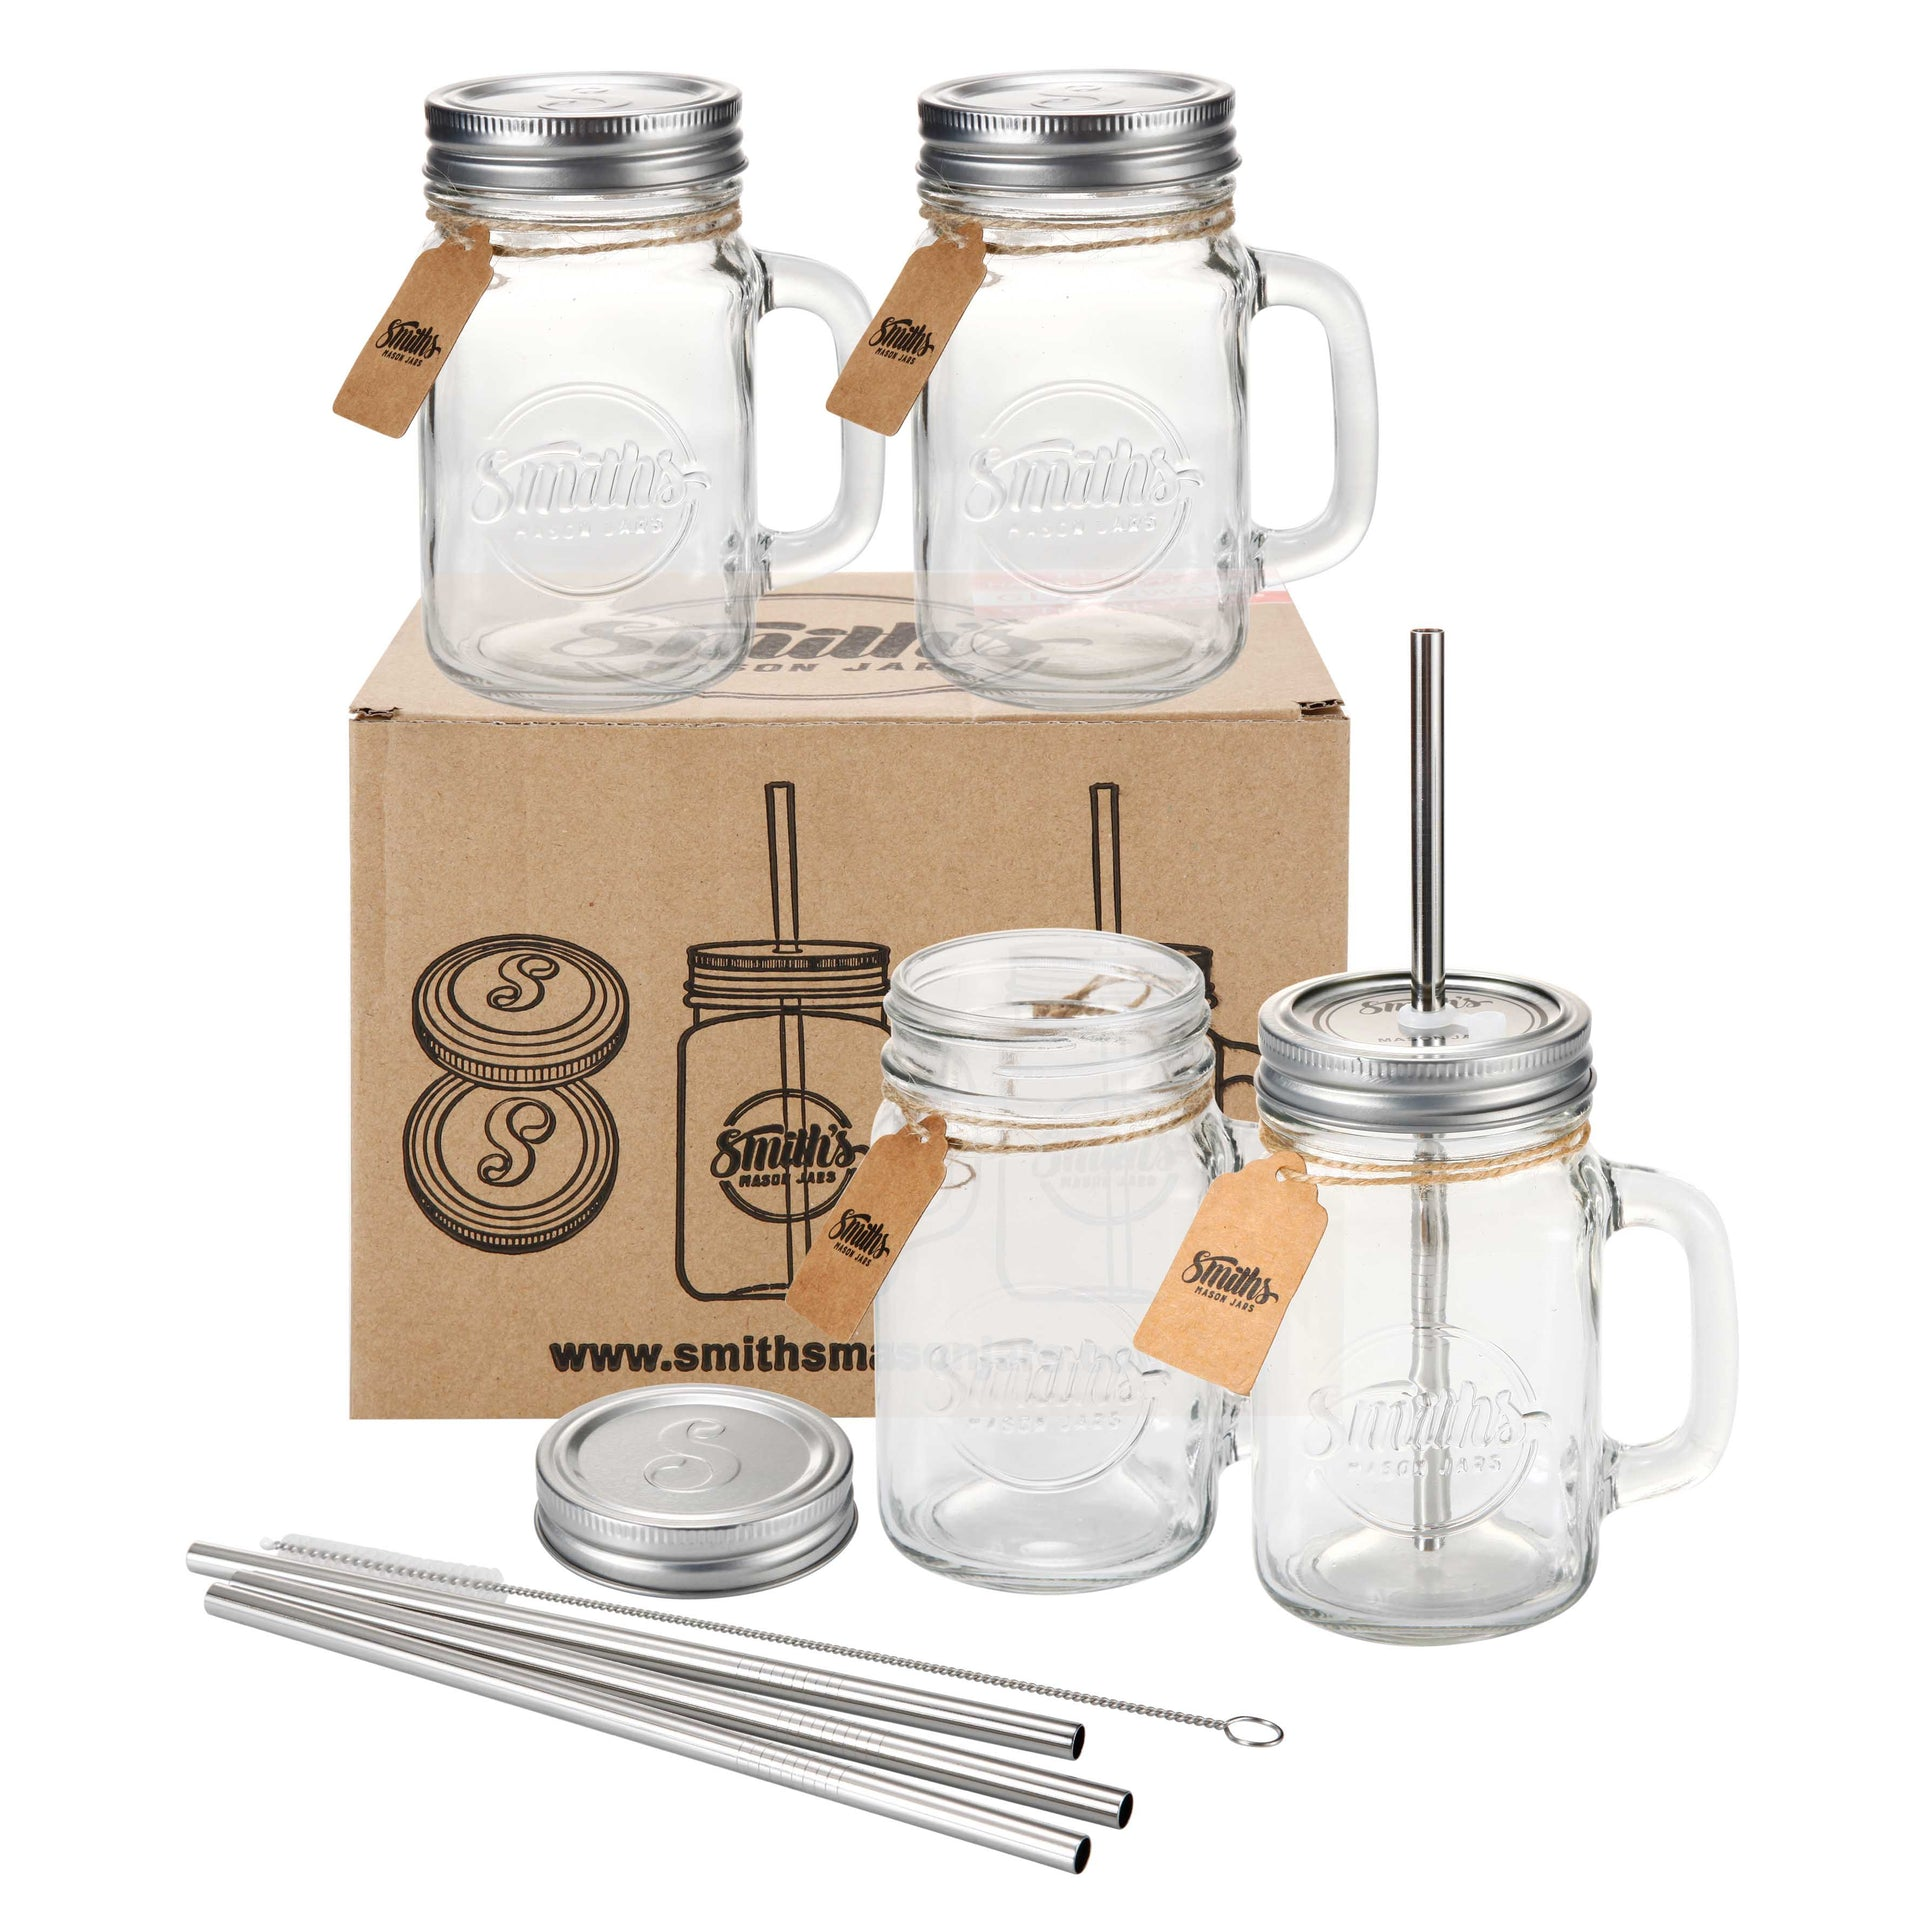 Set of 4 Mugs with Metal Straws and Lids | Smith's Mason Jars